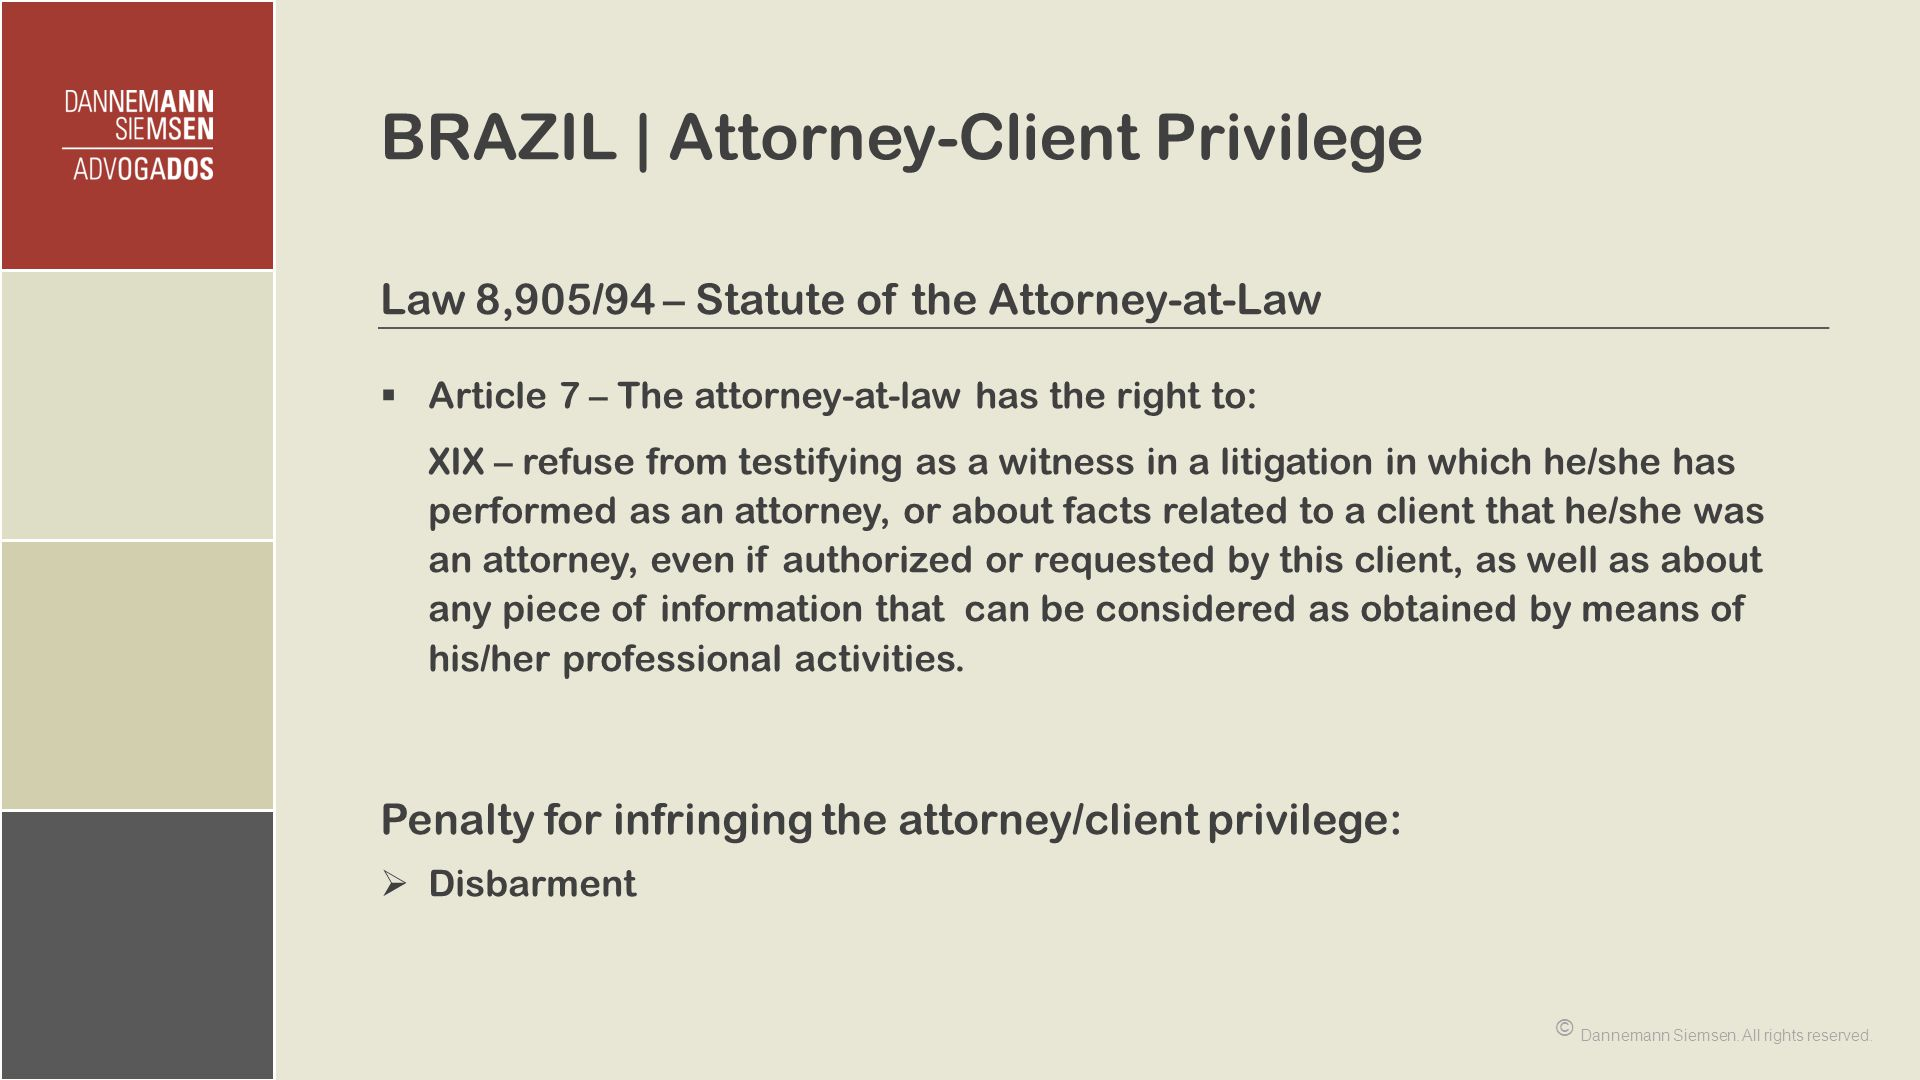 BRAZIL | Attorney-Client Privilege Law 8,905/94 – Statute of the Attorney-at-Law  Article 7 – The attorney-at-law has the right to: XIX – refuse from testifying as a witness in a litigation in which he/she has performed as an attorney, or about facts related to a client that he/she was an attorney, even if authorized or requested by this client, as well as about any piece of information that can be considered as obtained by means of his/her professional activities.